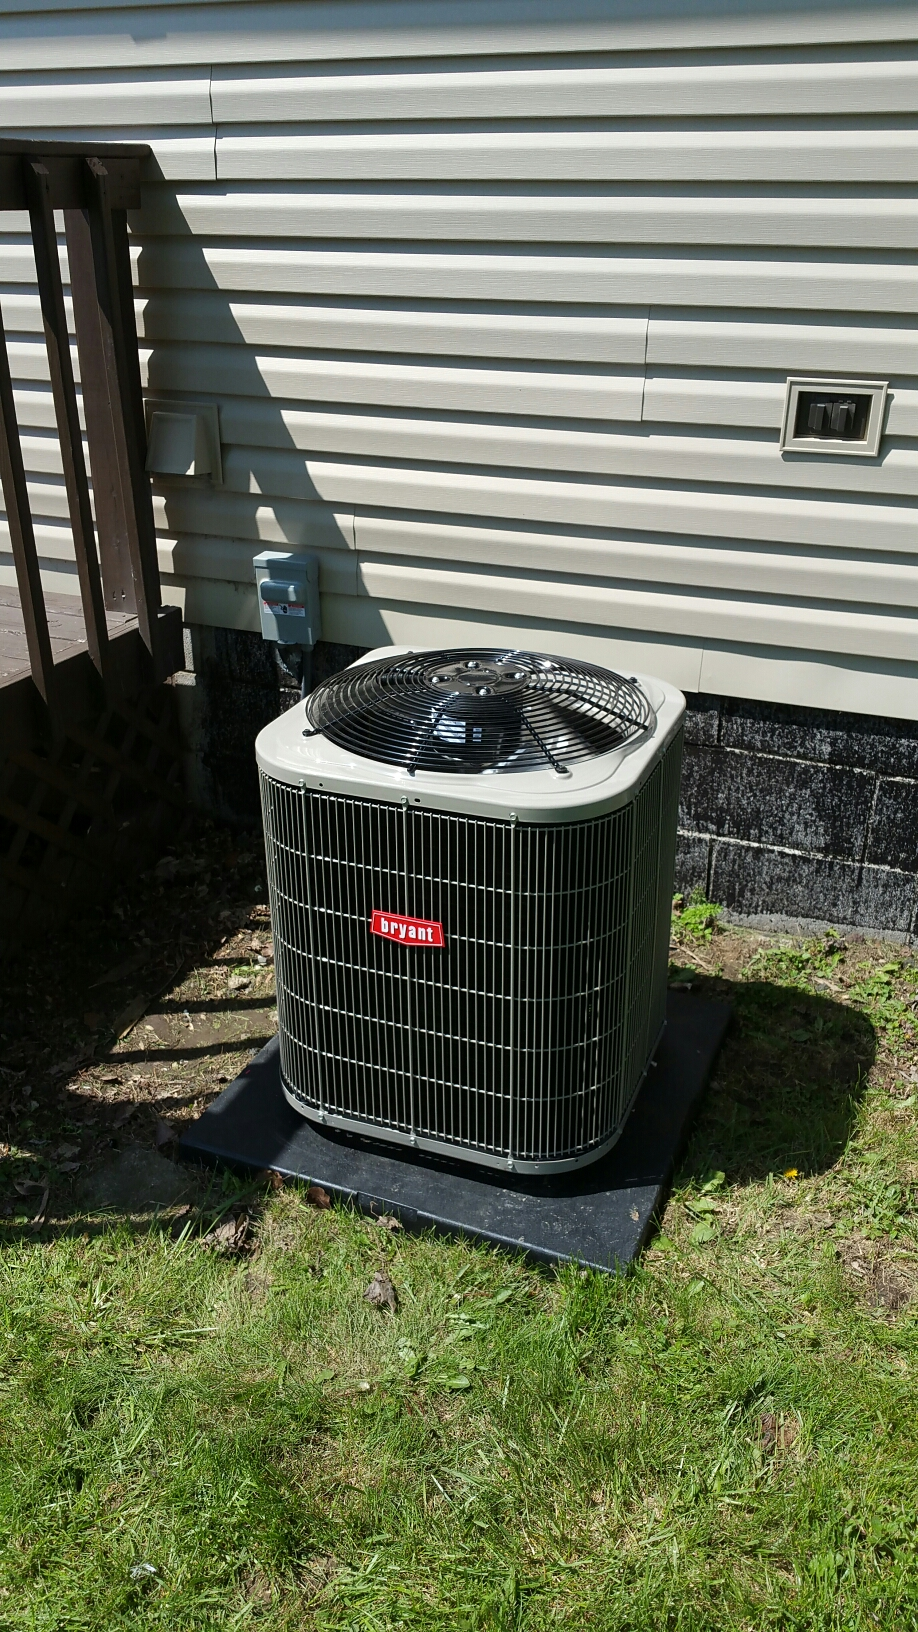 Columbia City, IN - Install Bryant single stage air conditioner on Coleman mobile home furnace